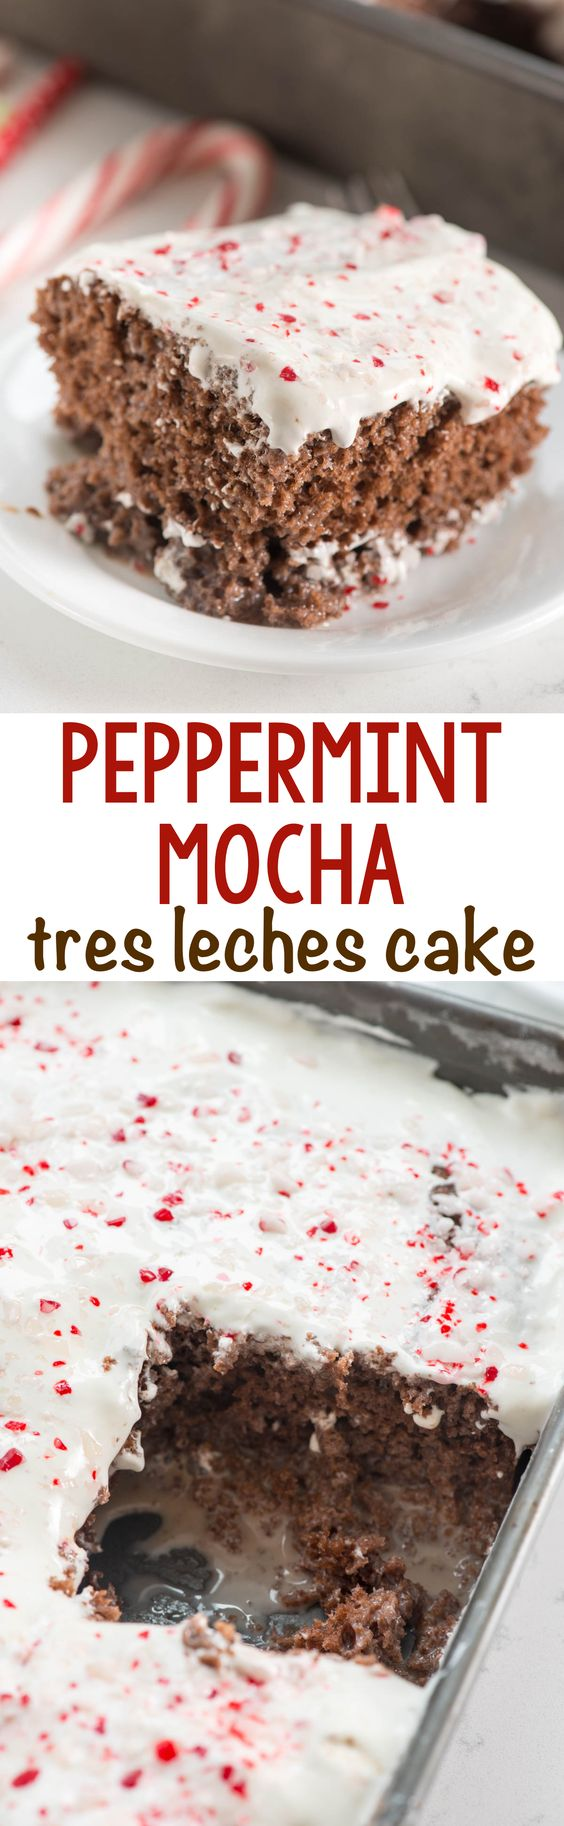 Peppermint Mocha Tres Leches Cake - this easy cake recipe is soaked with chocolate milk and full of peppermint mocha flavor!